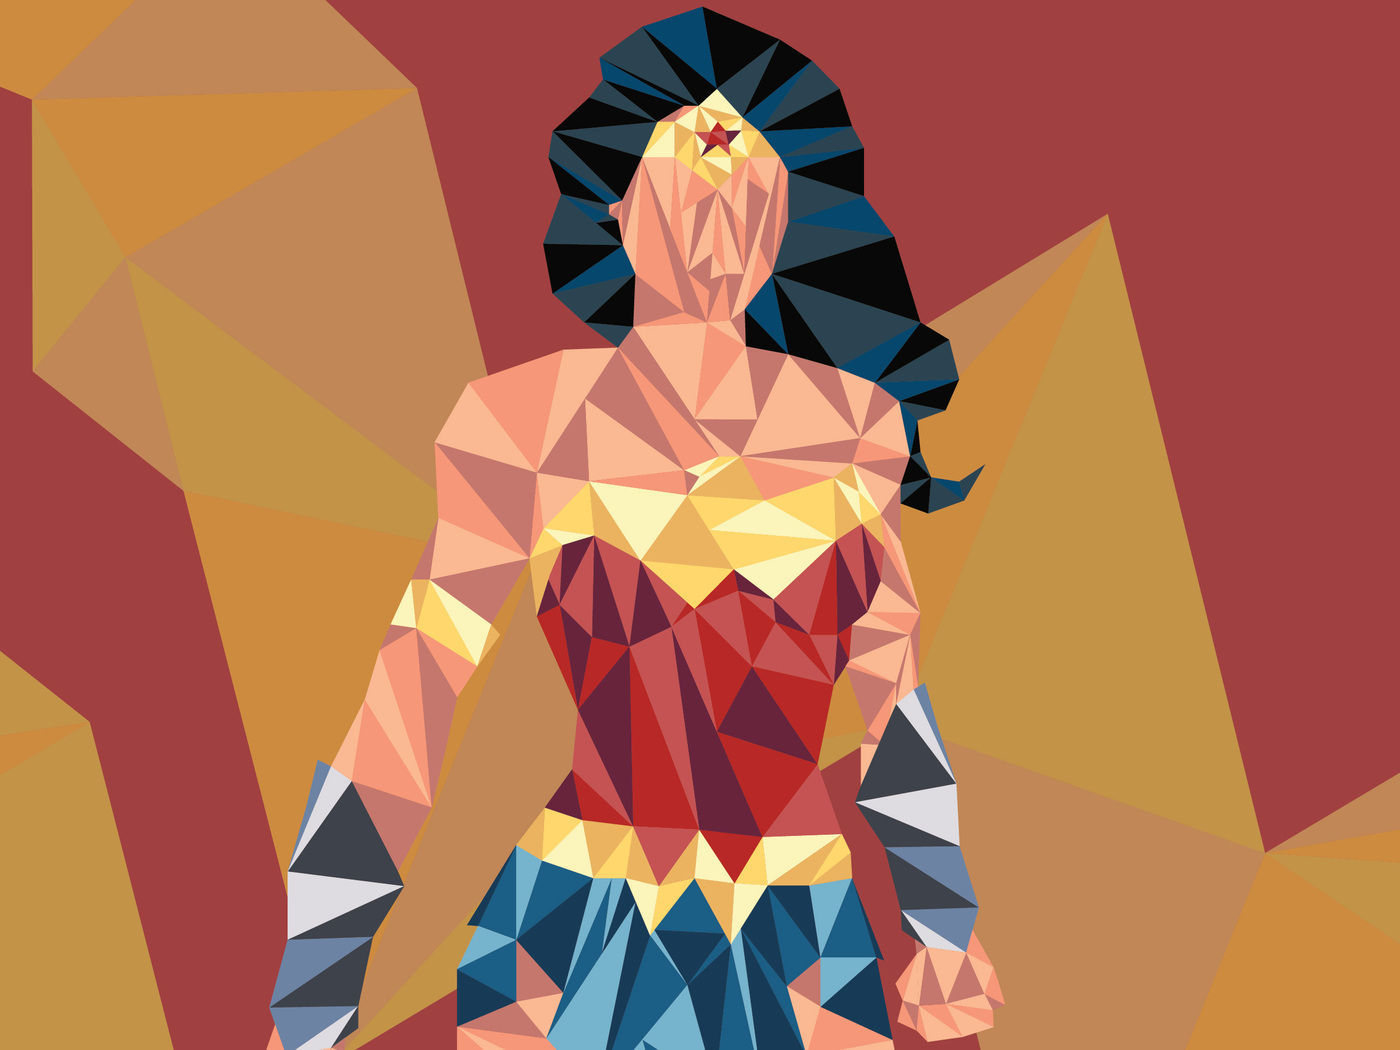 wonder-woman-low-poly-art-3t.jpg